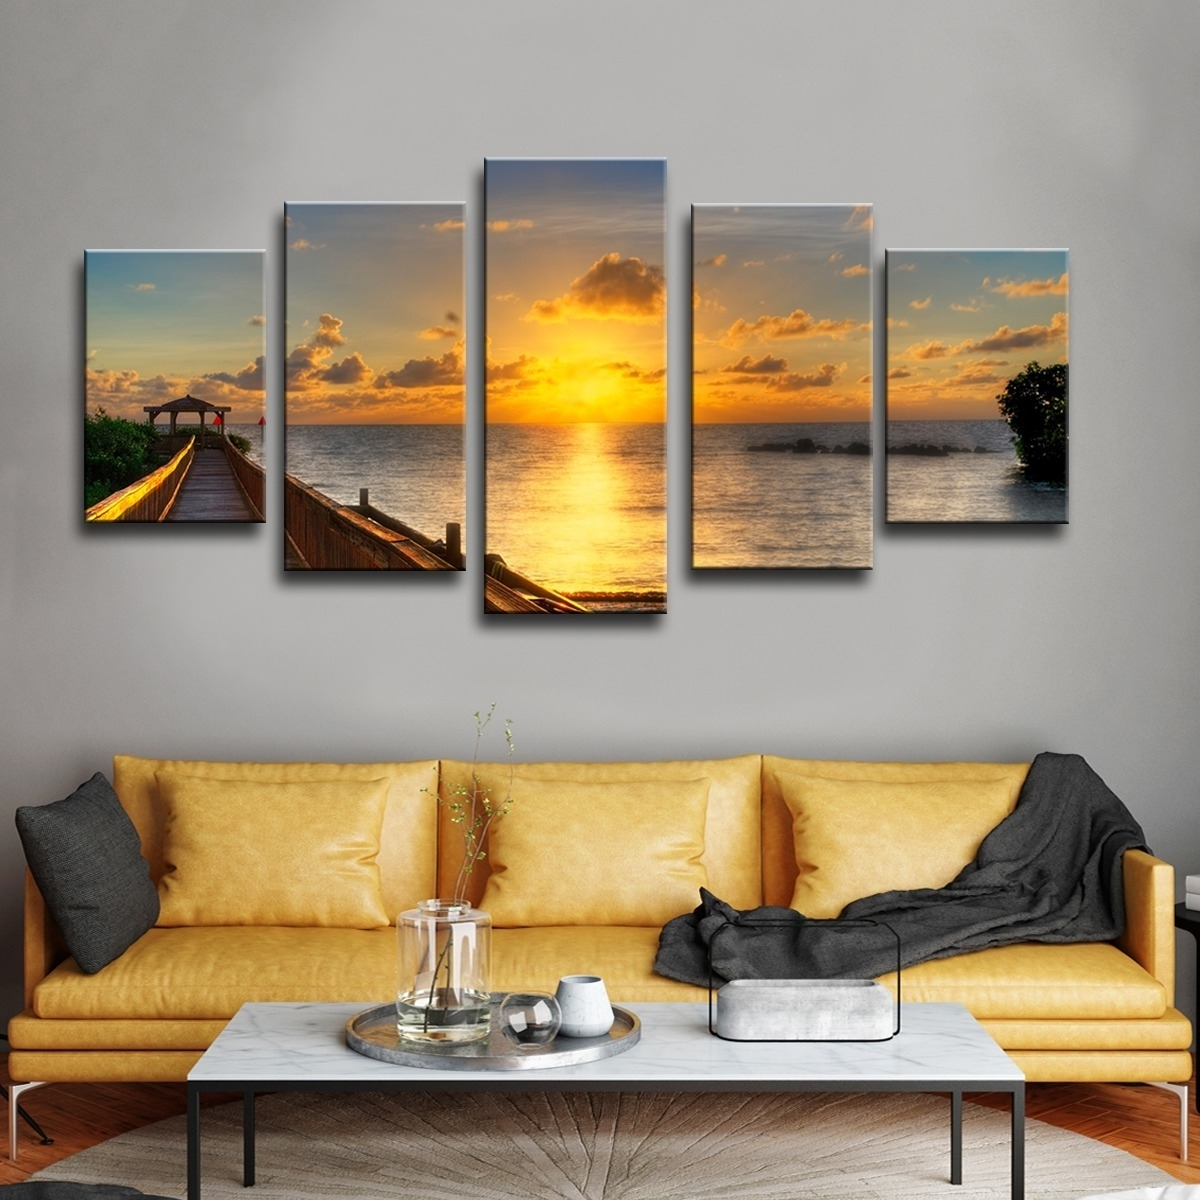 Shop Havenside Home Key's Sunrise' 5 Piece Set Canvas Wall Art For Famous Overstock Wall Art (View 15 of 20)